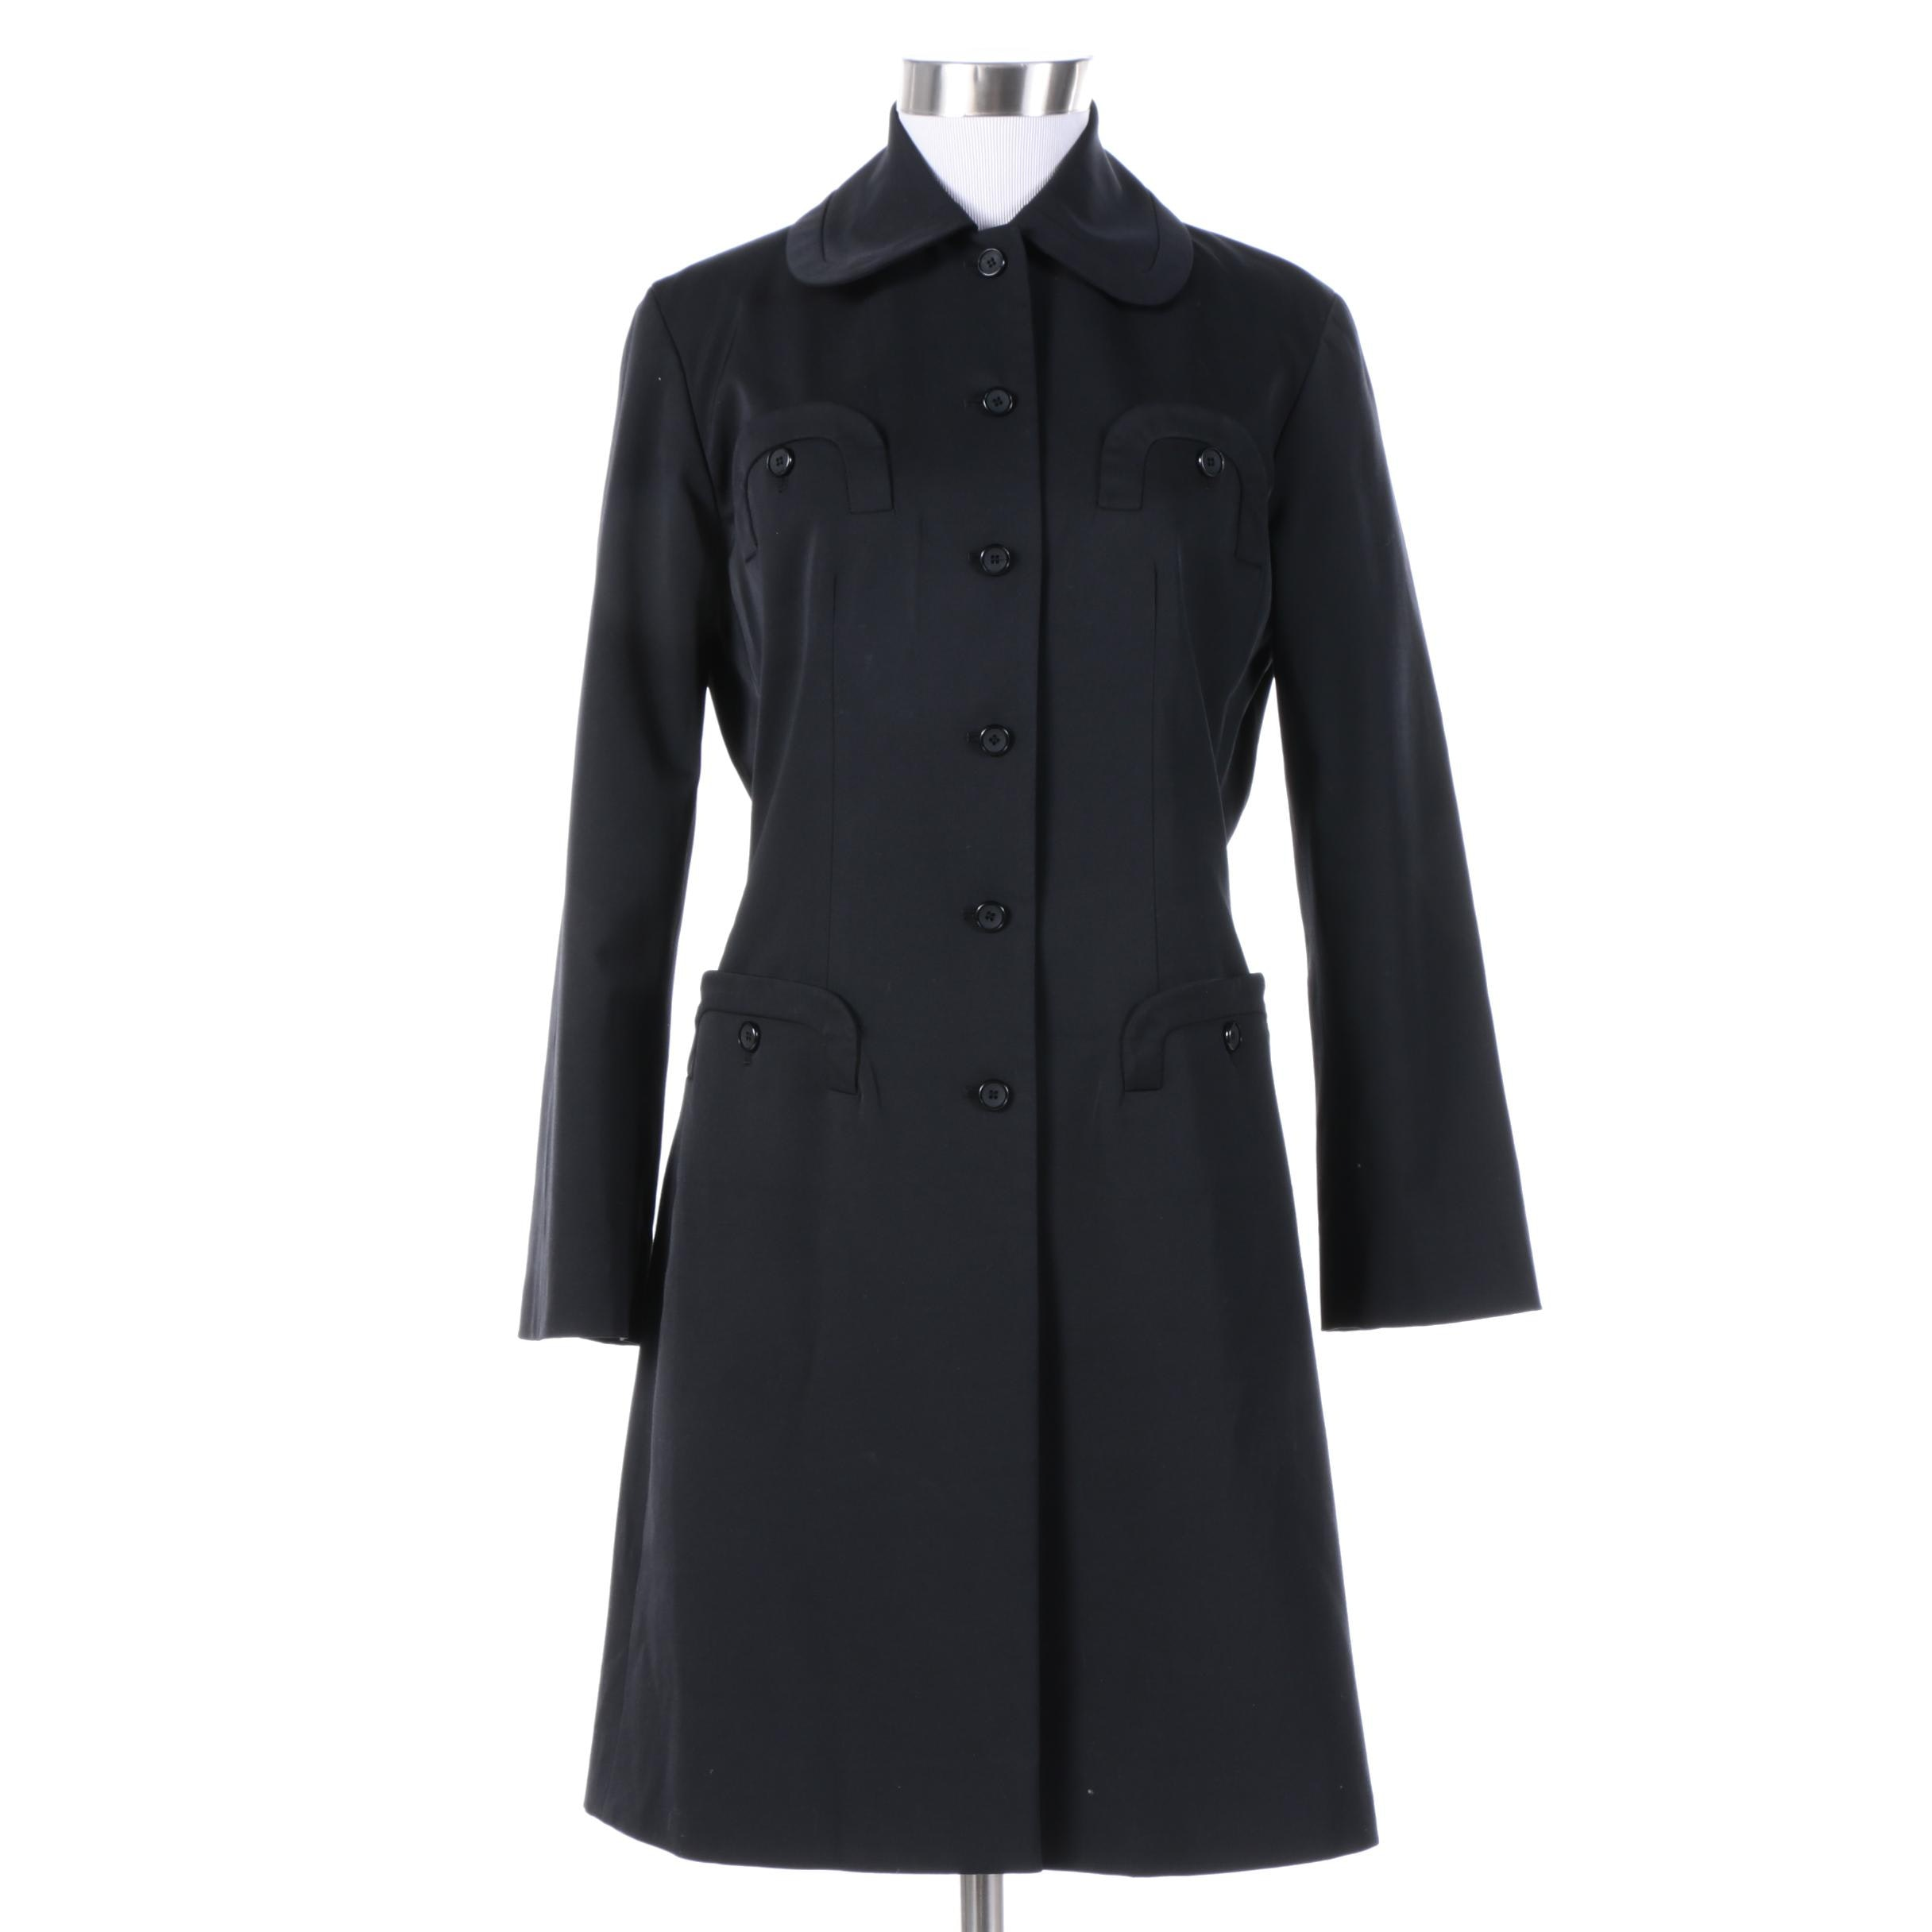 Women's Etcetera Black Poly-Blend Jacket